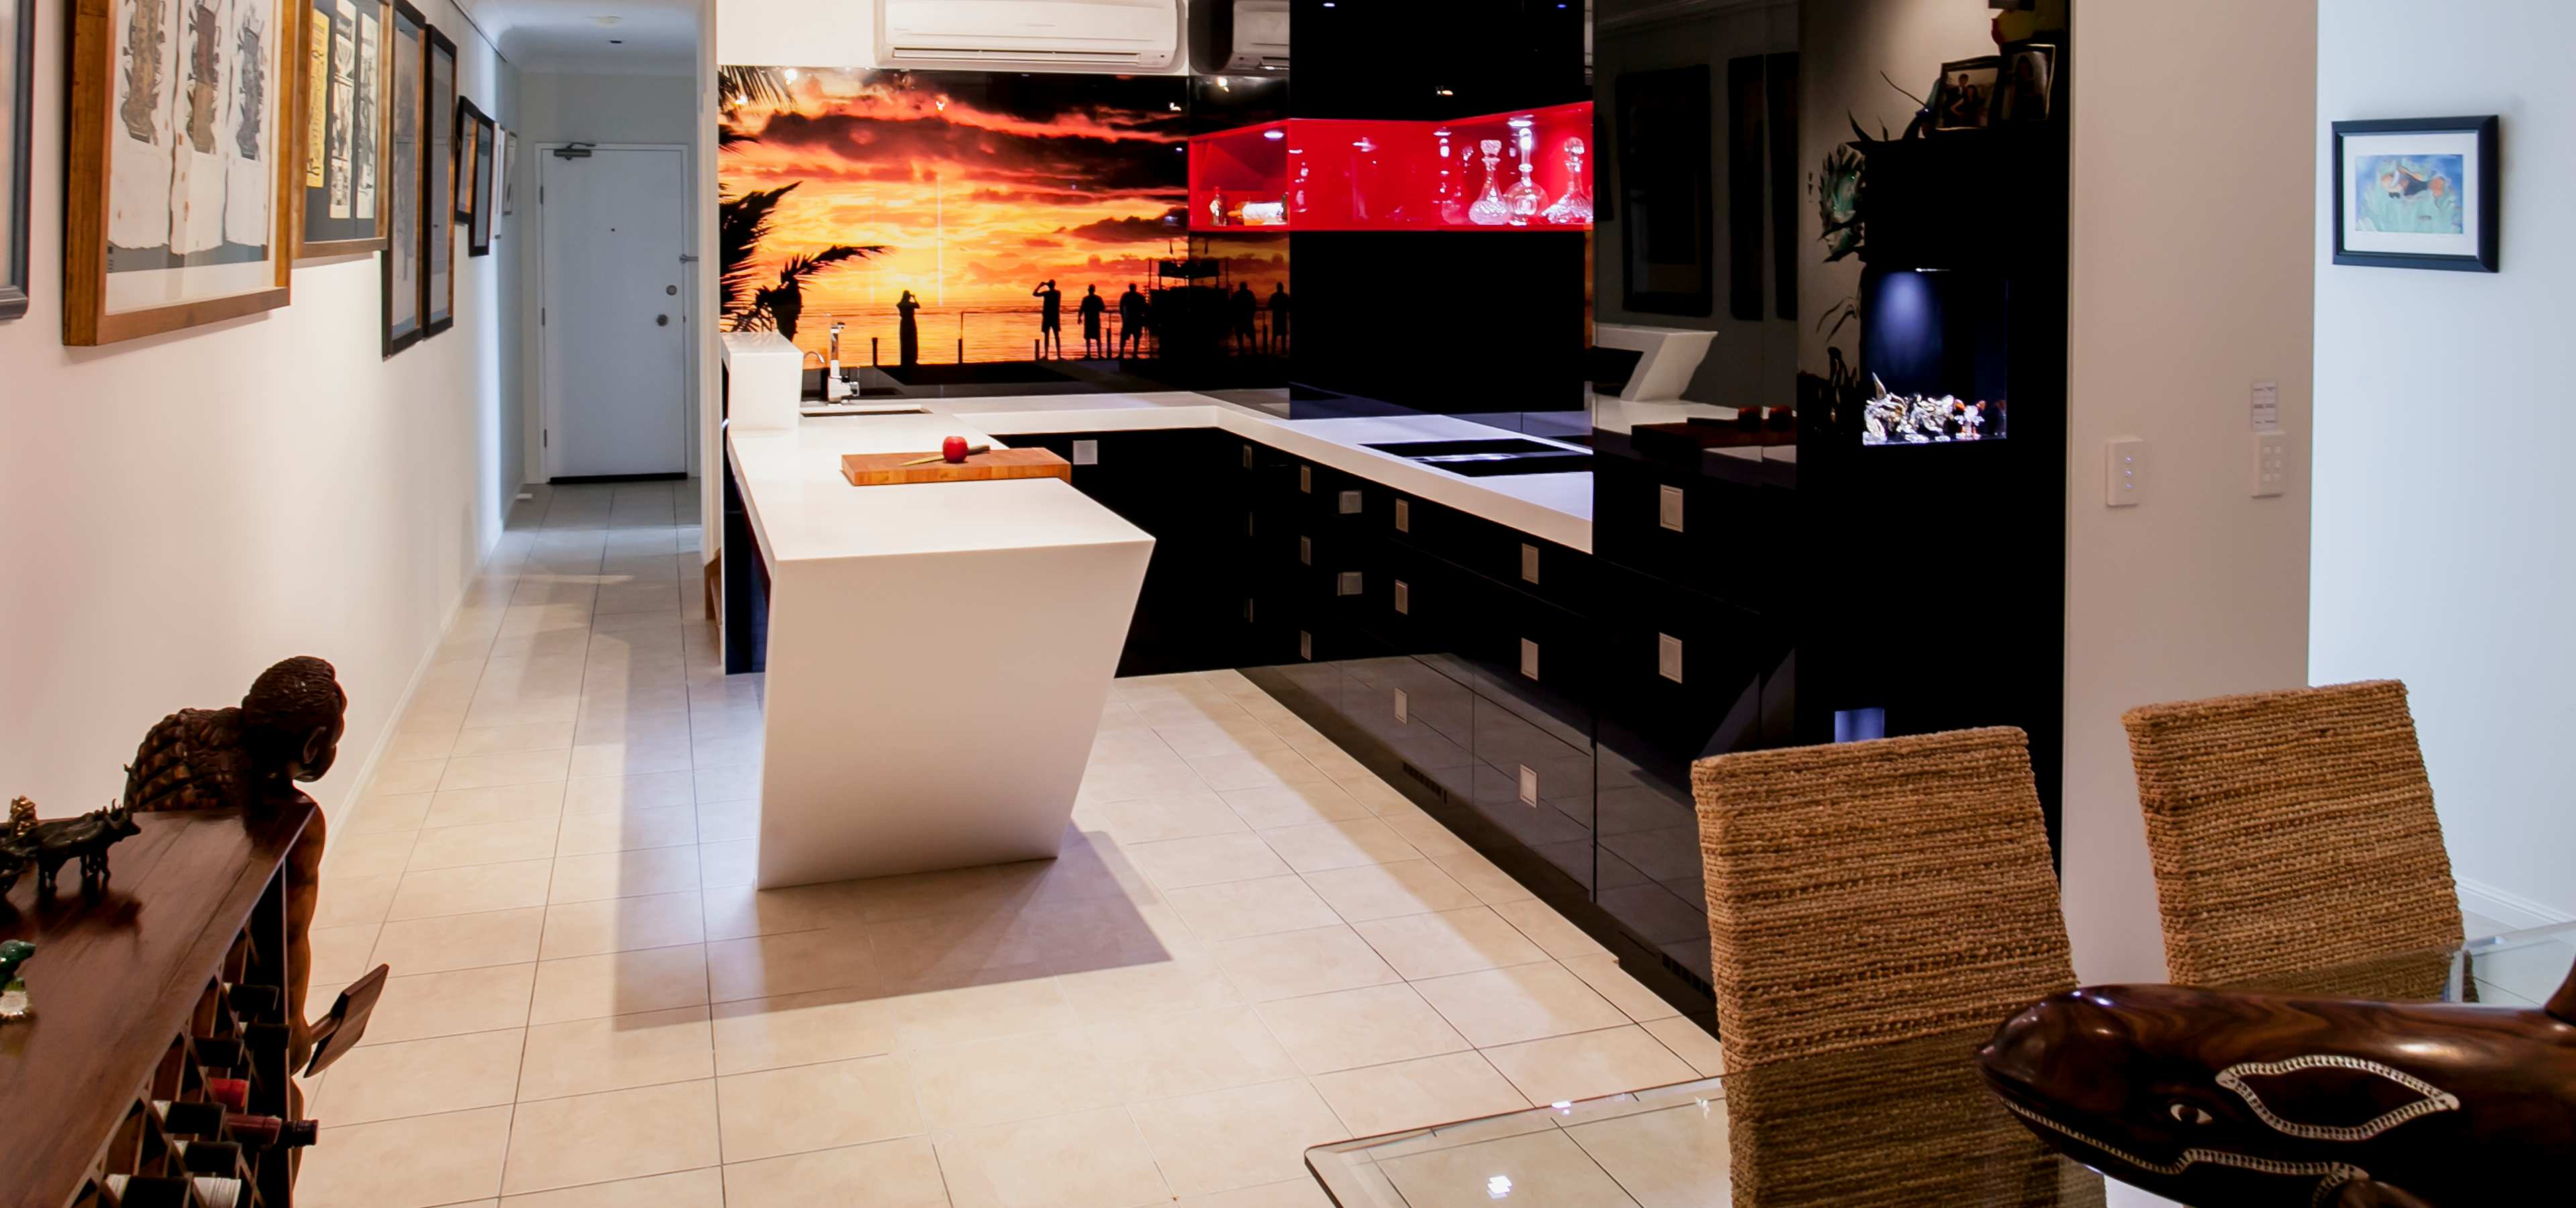 kitchen design cairns cairns kitchen designs cairns cabinetmakers 445